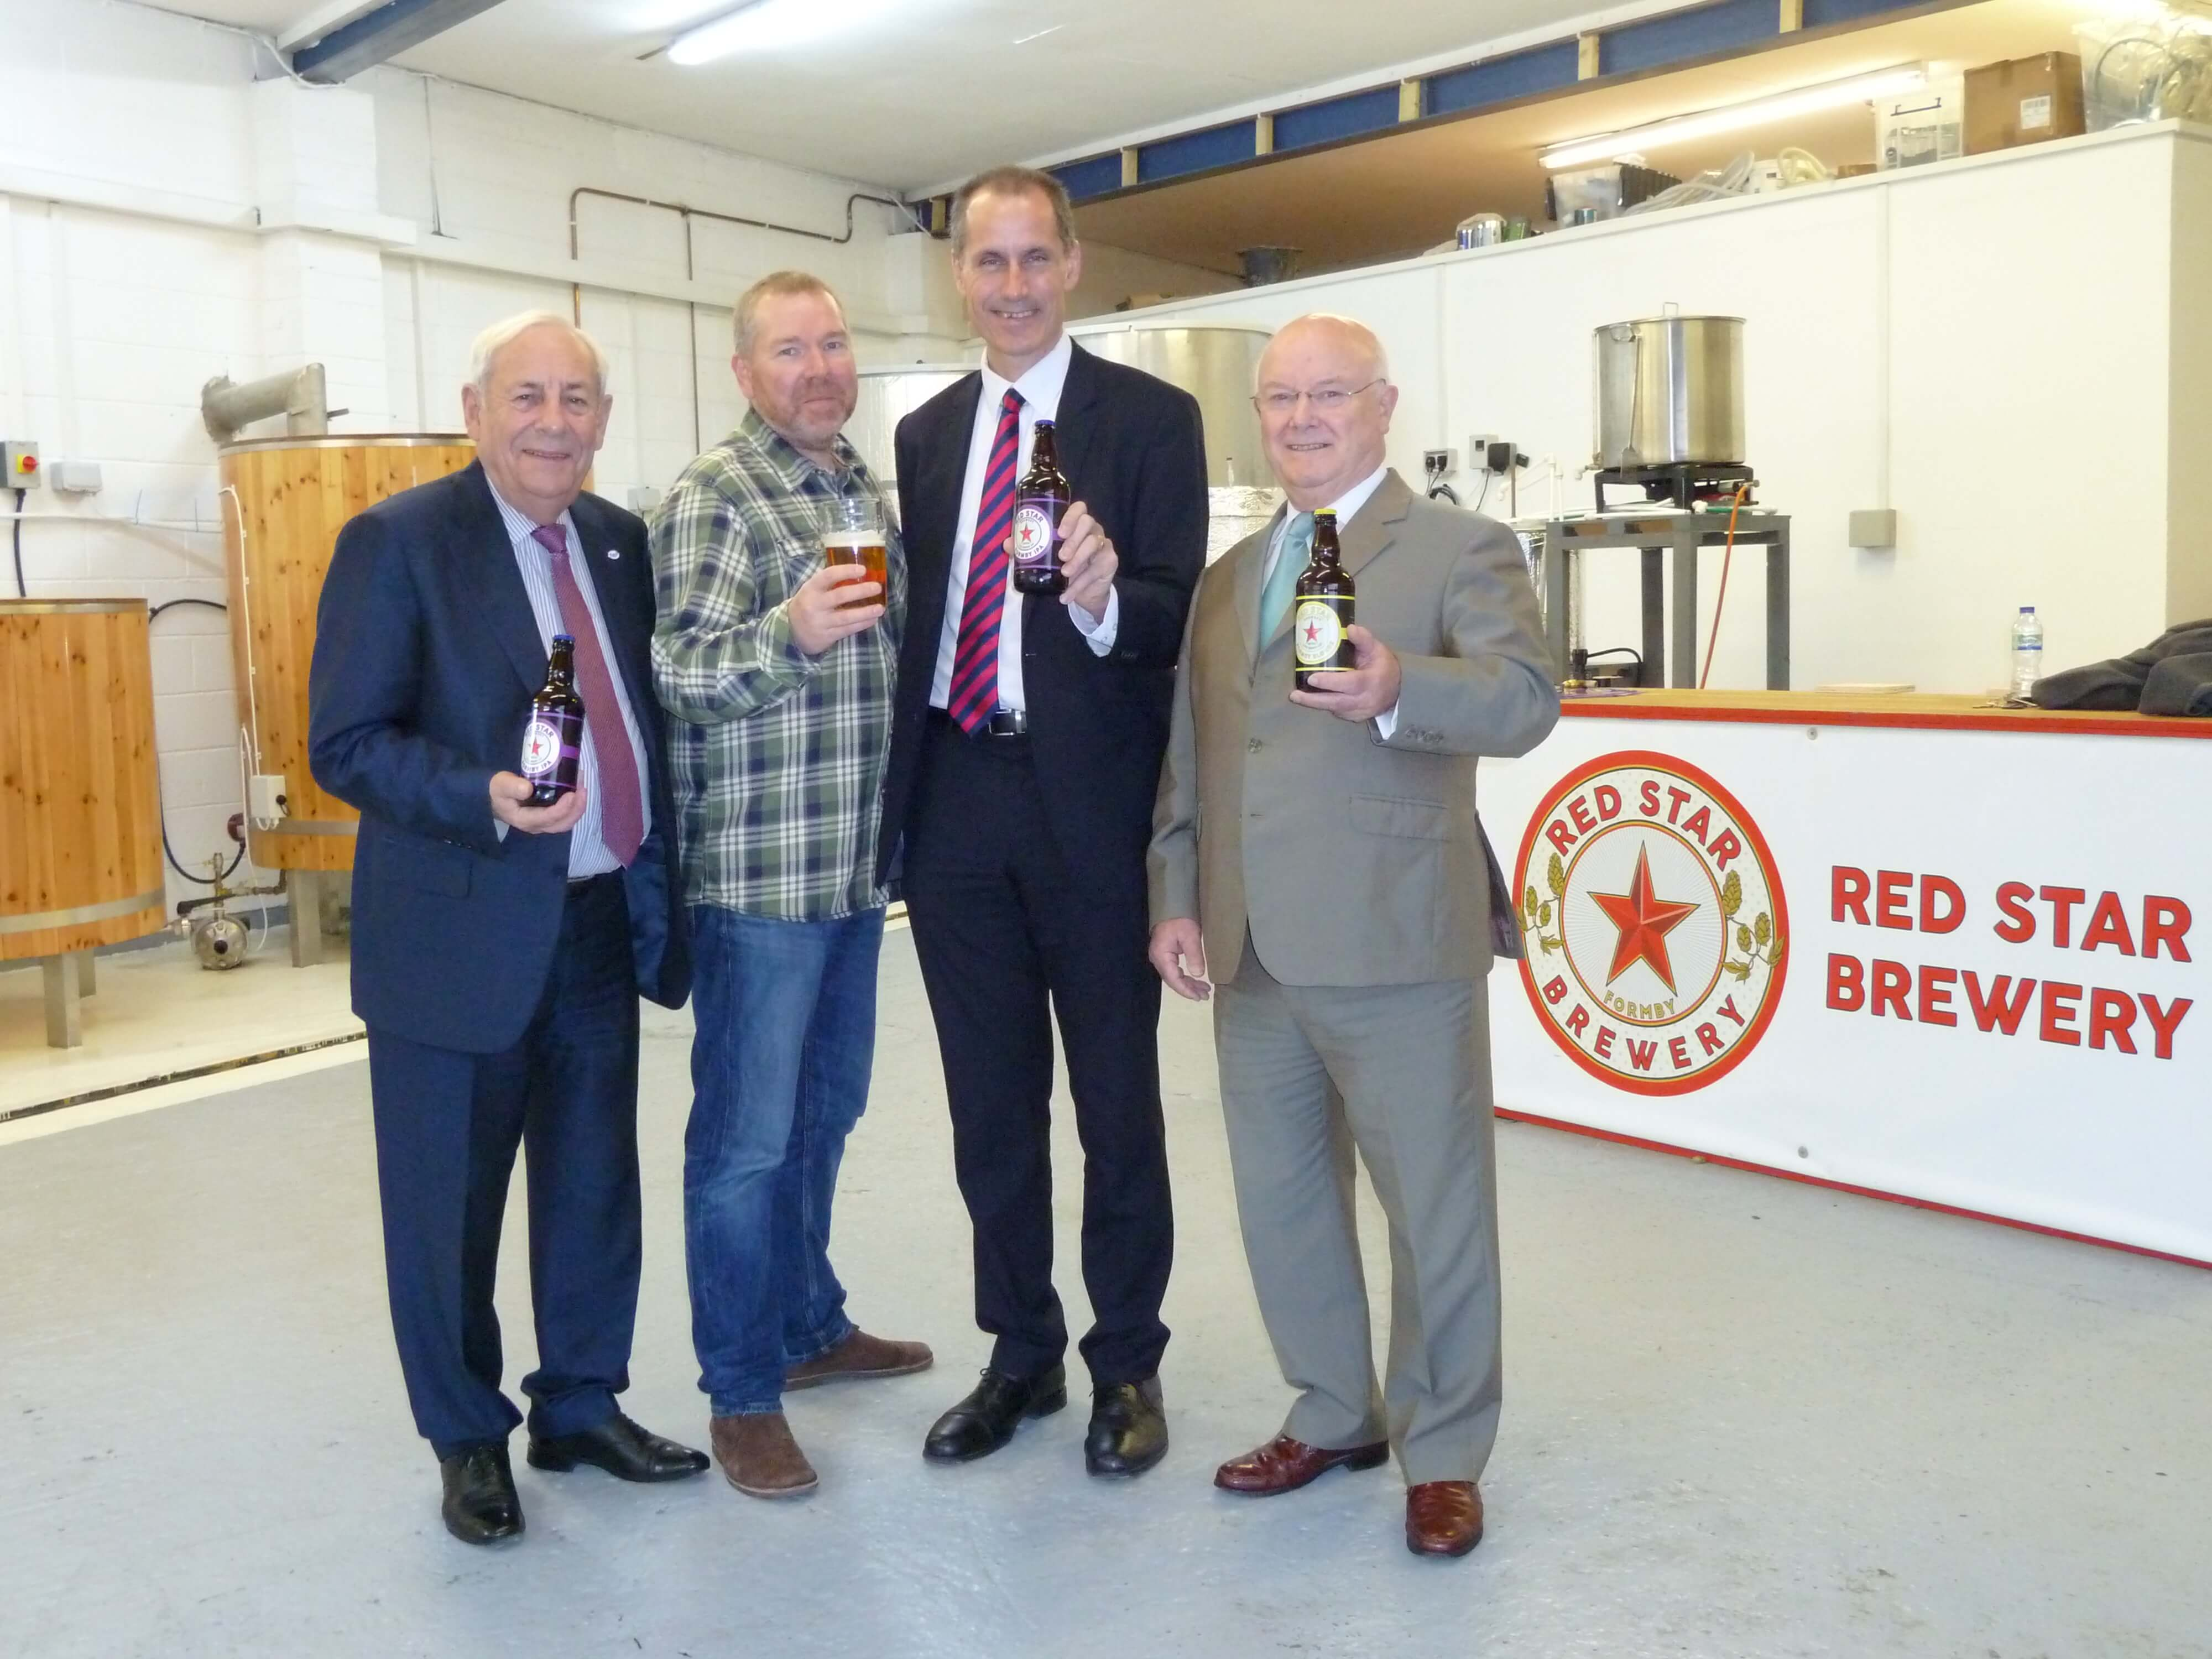 Bill Esterson and Federation of Small Businesses national chairman John Allen and Merseyside branch chairman Chris Burgess at Red Star Brewery with co-founder Glen Monaghan.